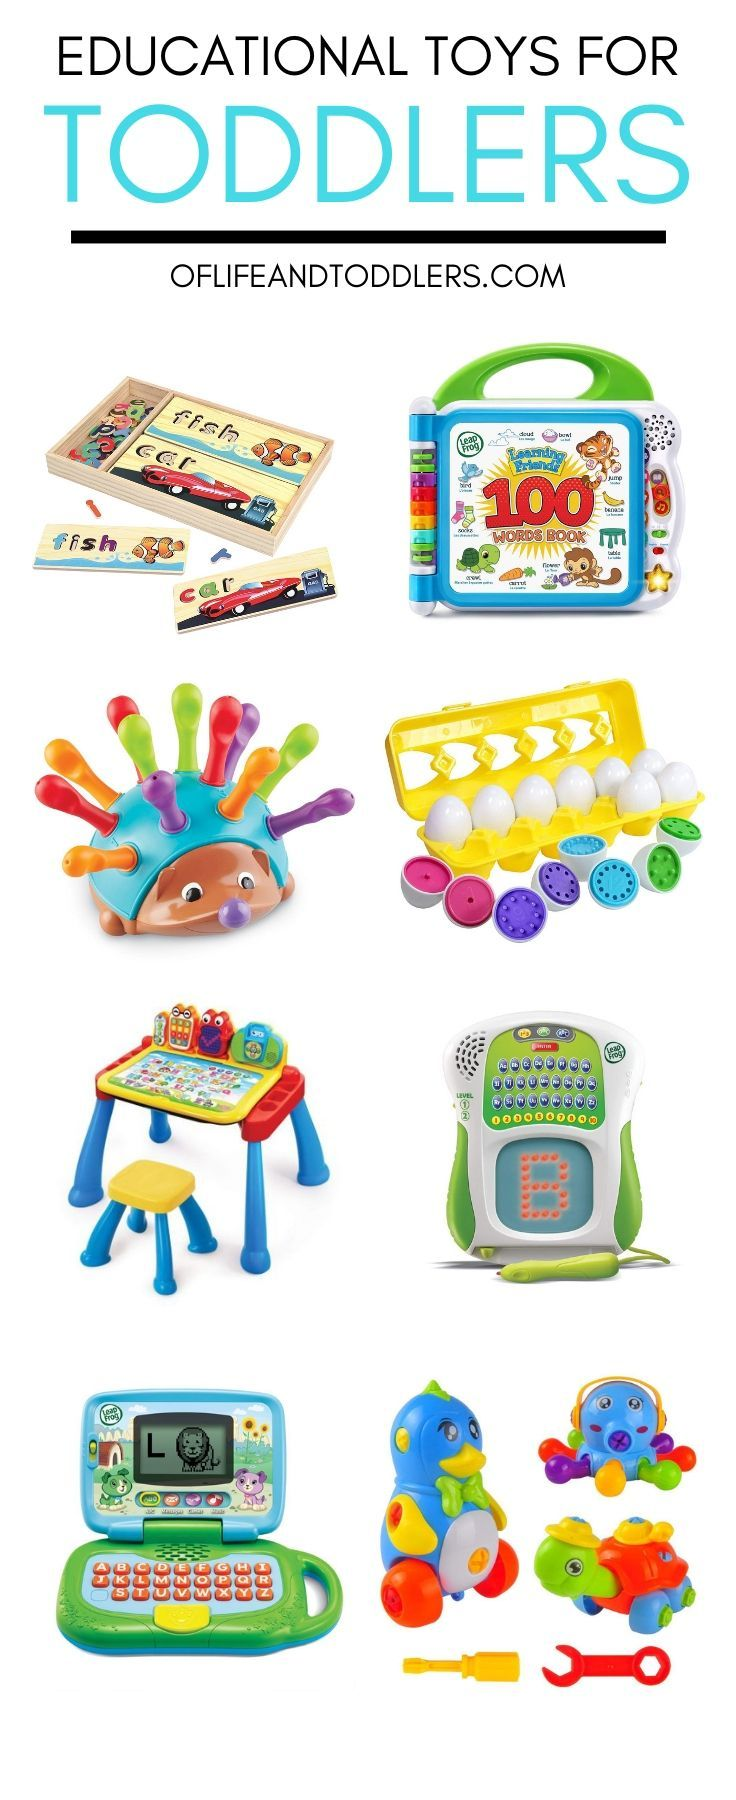 These Toys Are Incredibly Fun And Will Help To Stimulate Your Toddler S Brain Development Educational Toys For Toddlers Educational Toys Best Educational Toys